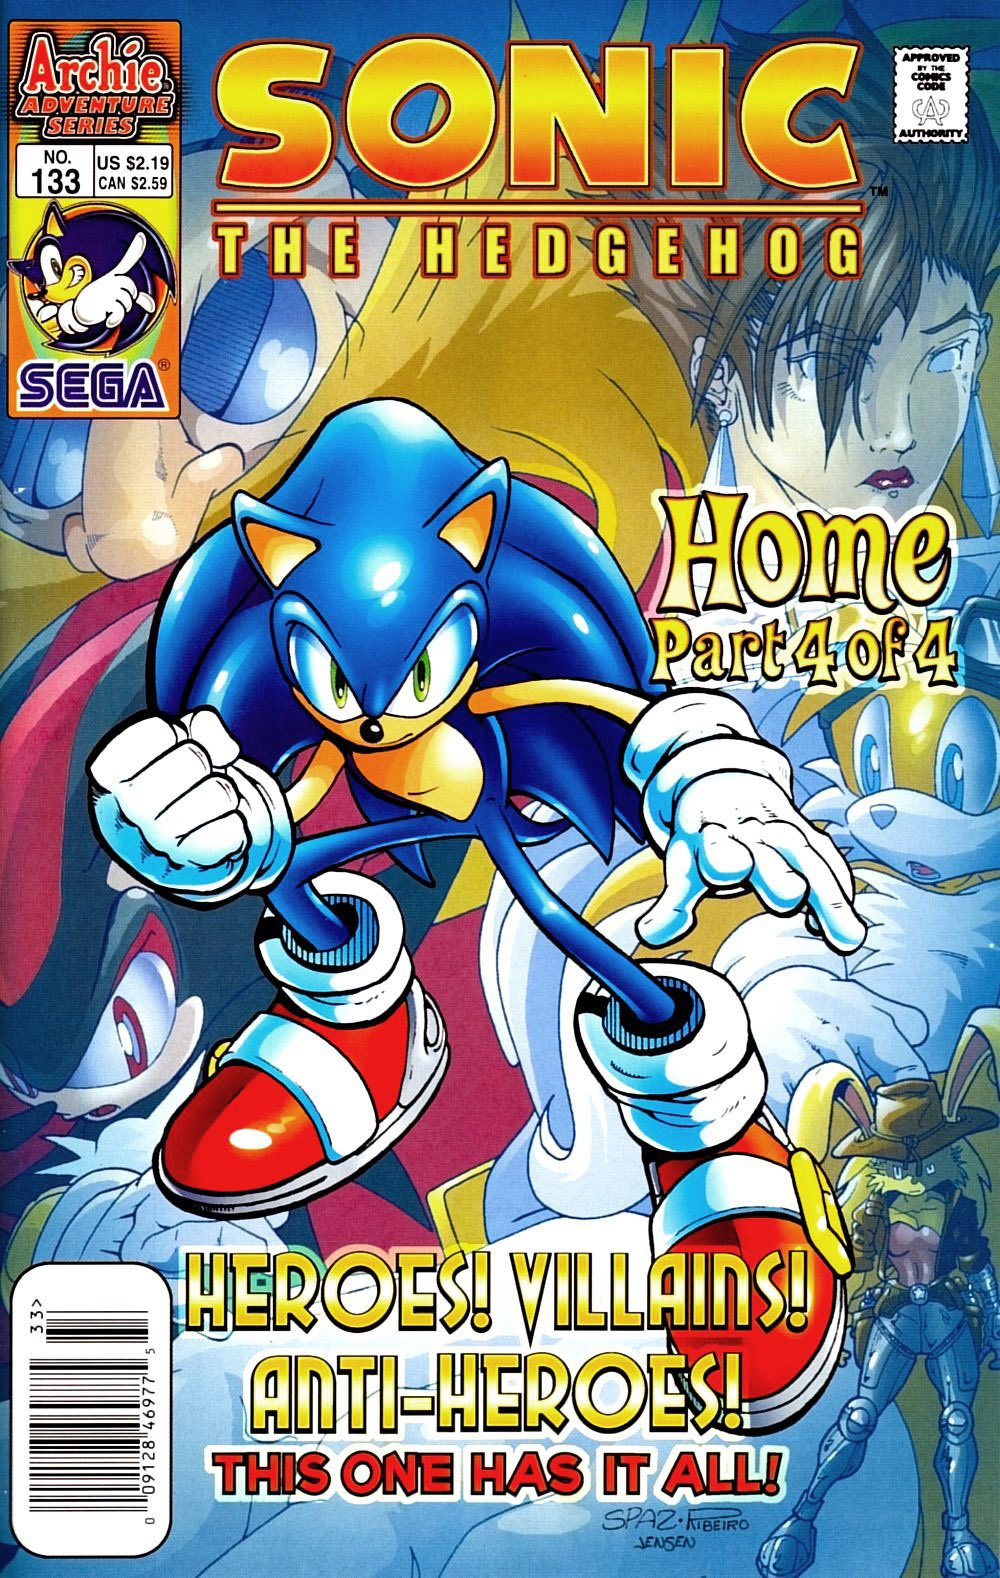 Sonic the Hedgehog 133 (April 2004)